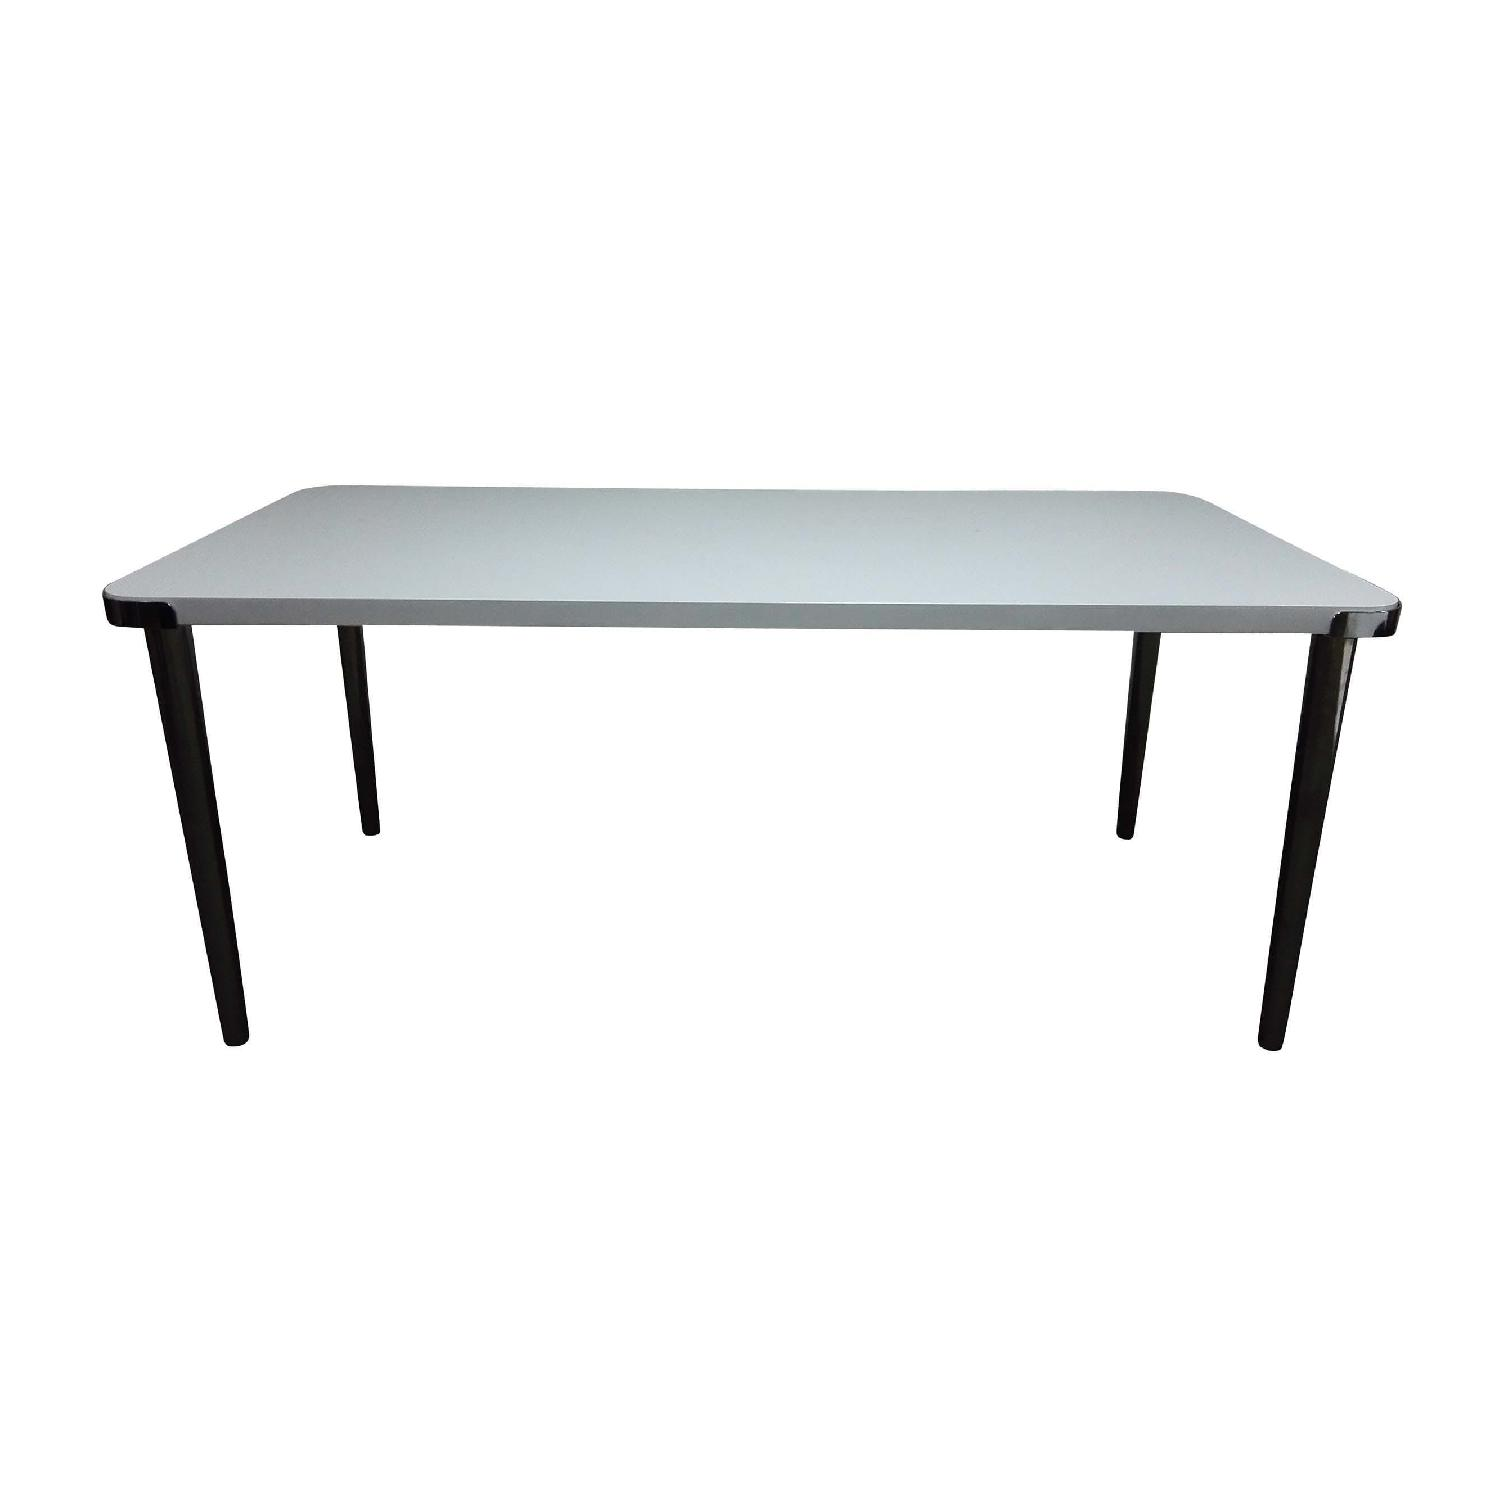 Modern Dining Table in Gloss White Top & Dark Nickel Base - image-1